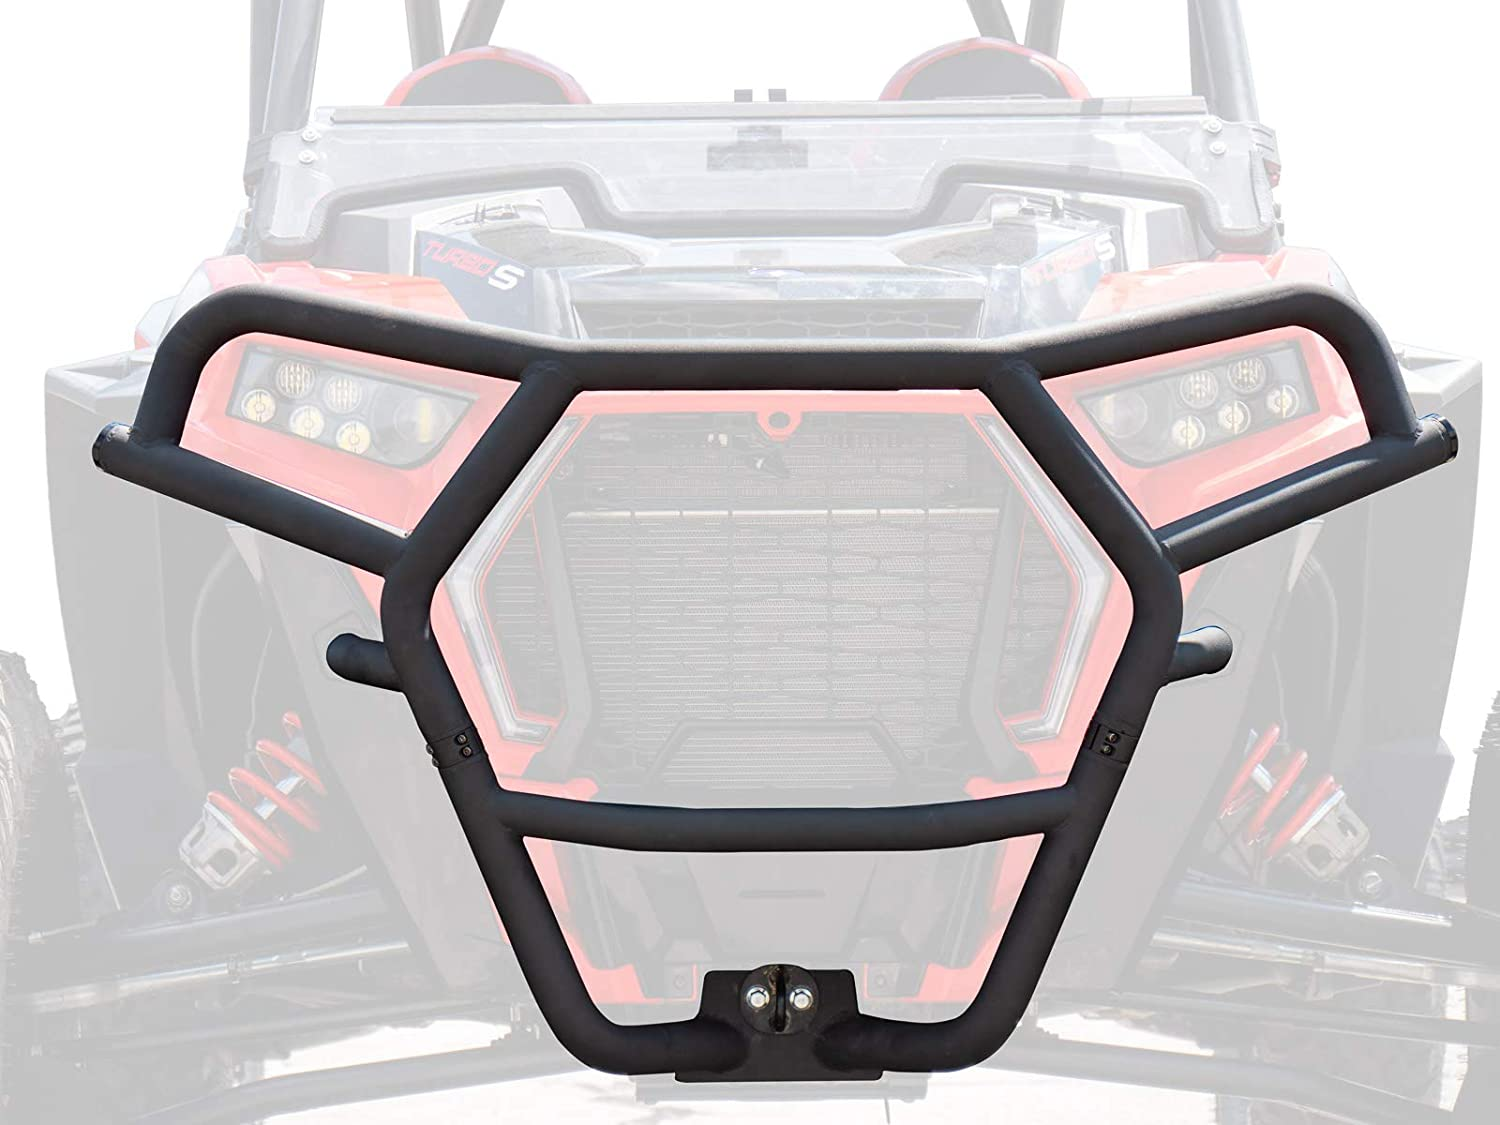   1 Pair 1//8 Aluminum Plating SuperATV Heavy Duty Black Inner Fender Guards for 2014+ Polaris RZR XP 1000 // XP Turbo//Turbo S // 900 // S 1000 5X Stronger Than Your Factory Firewall! See Fitment